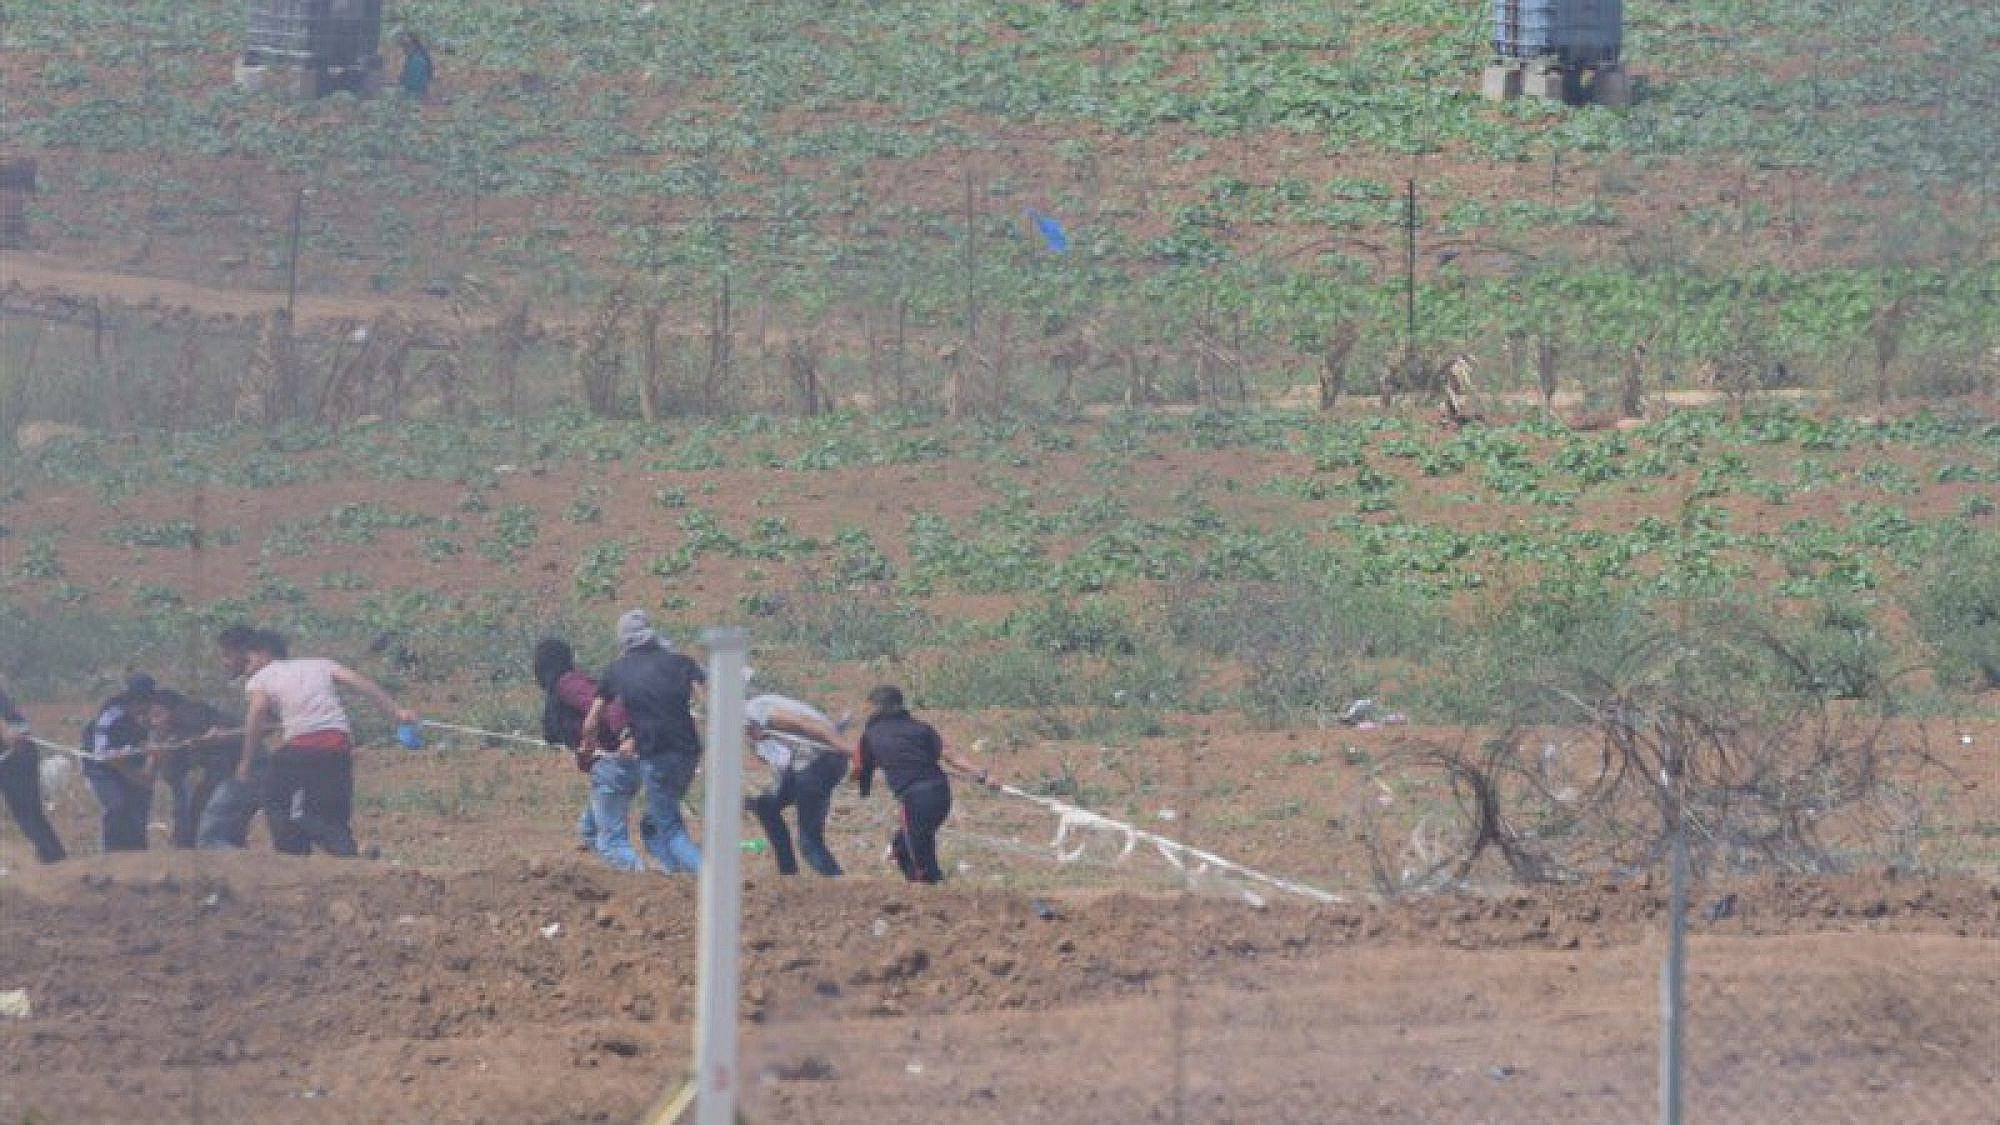 Gazan rioters attempting to infiltrate Israel and burn the security fence adjacent to the Karni Crossing in the northern Gaza Strip. Credit: IDF.